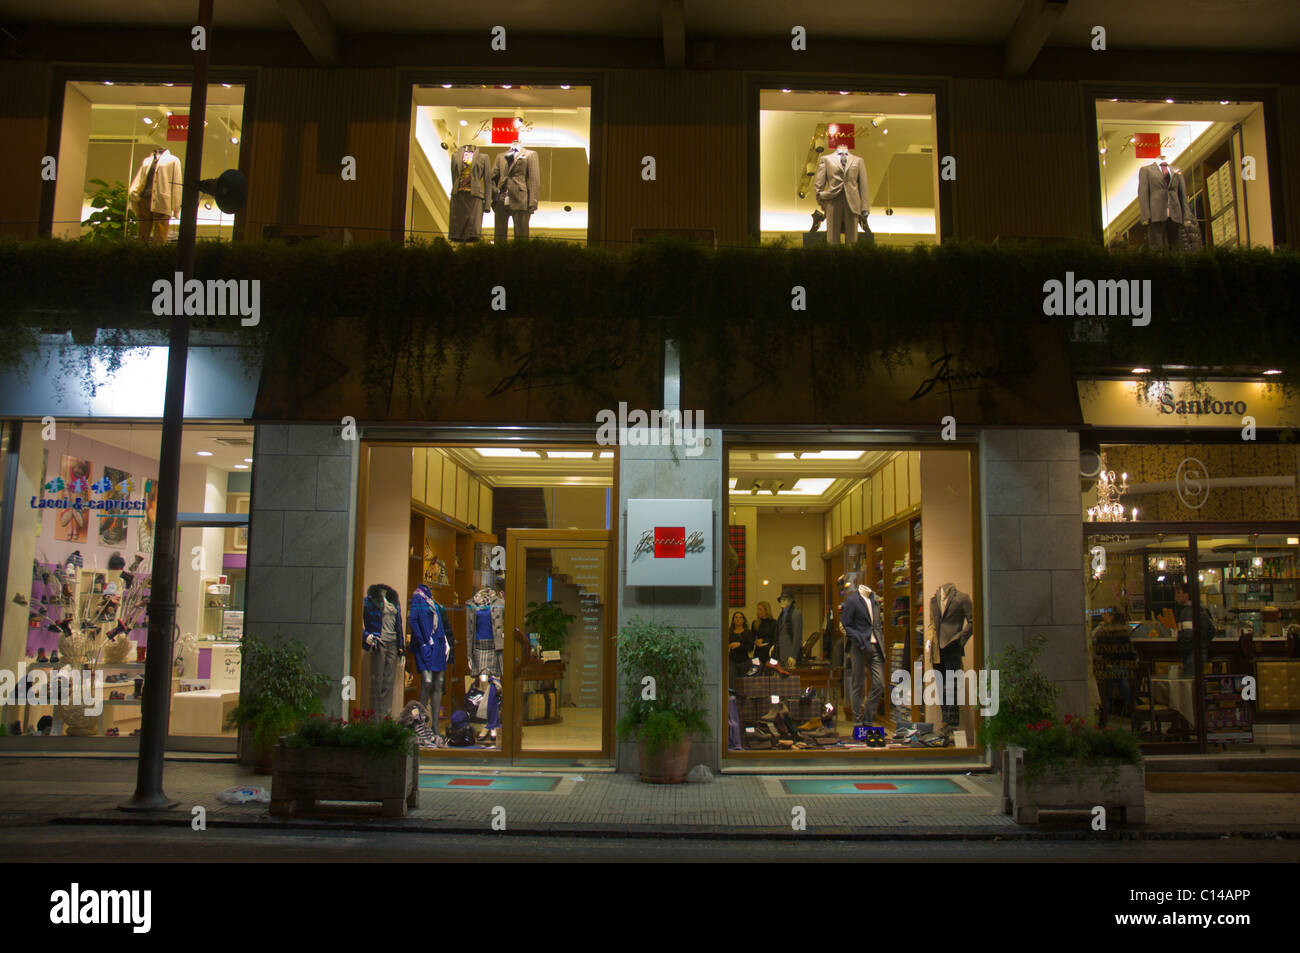 80d4b924a4ae Shops in the evening at Piazza Cairoli main square central Messina city  Sicily Italy Europe